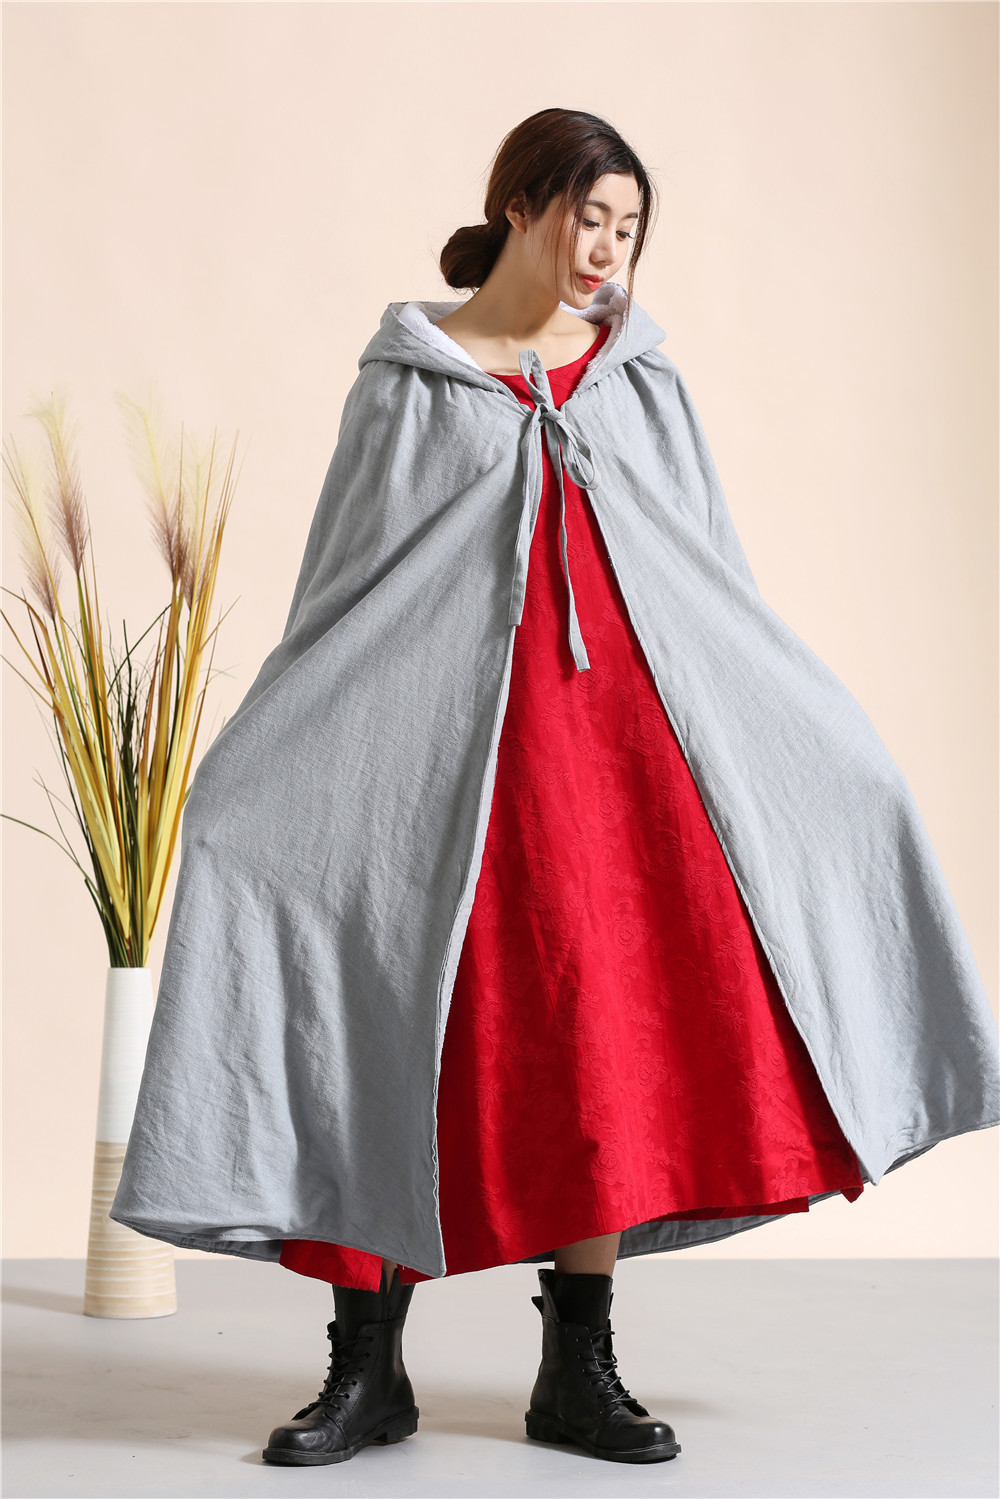 New 2015 Chinese style literary long Hooded Cloak warm flocking dust coat Windbreaker Shawls Winter Poncho And Cape 4 colors